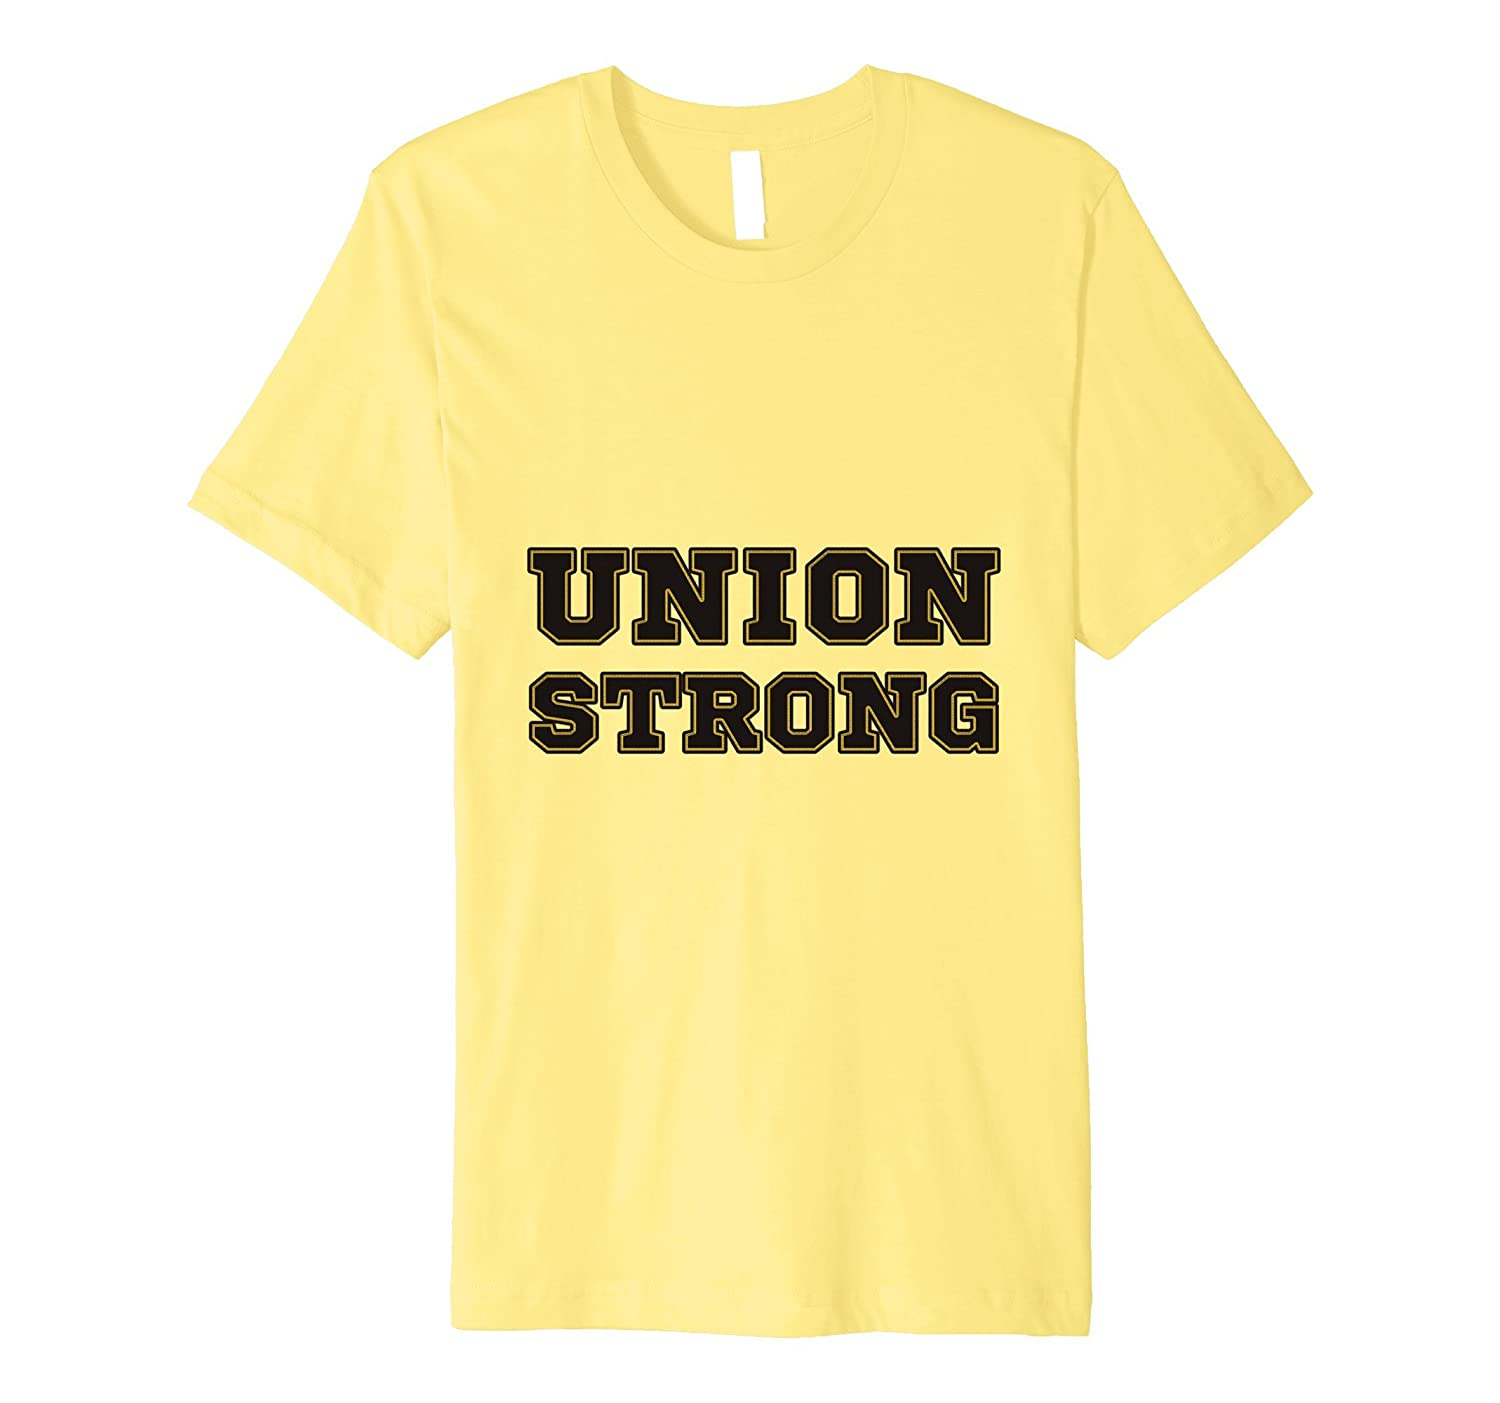 Union Strong Tee shirts Short sleeves